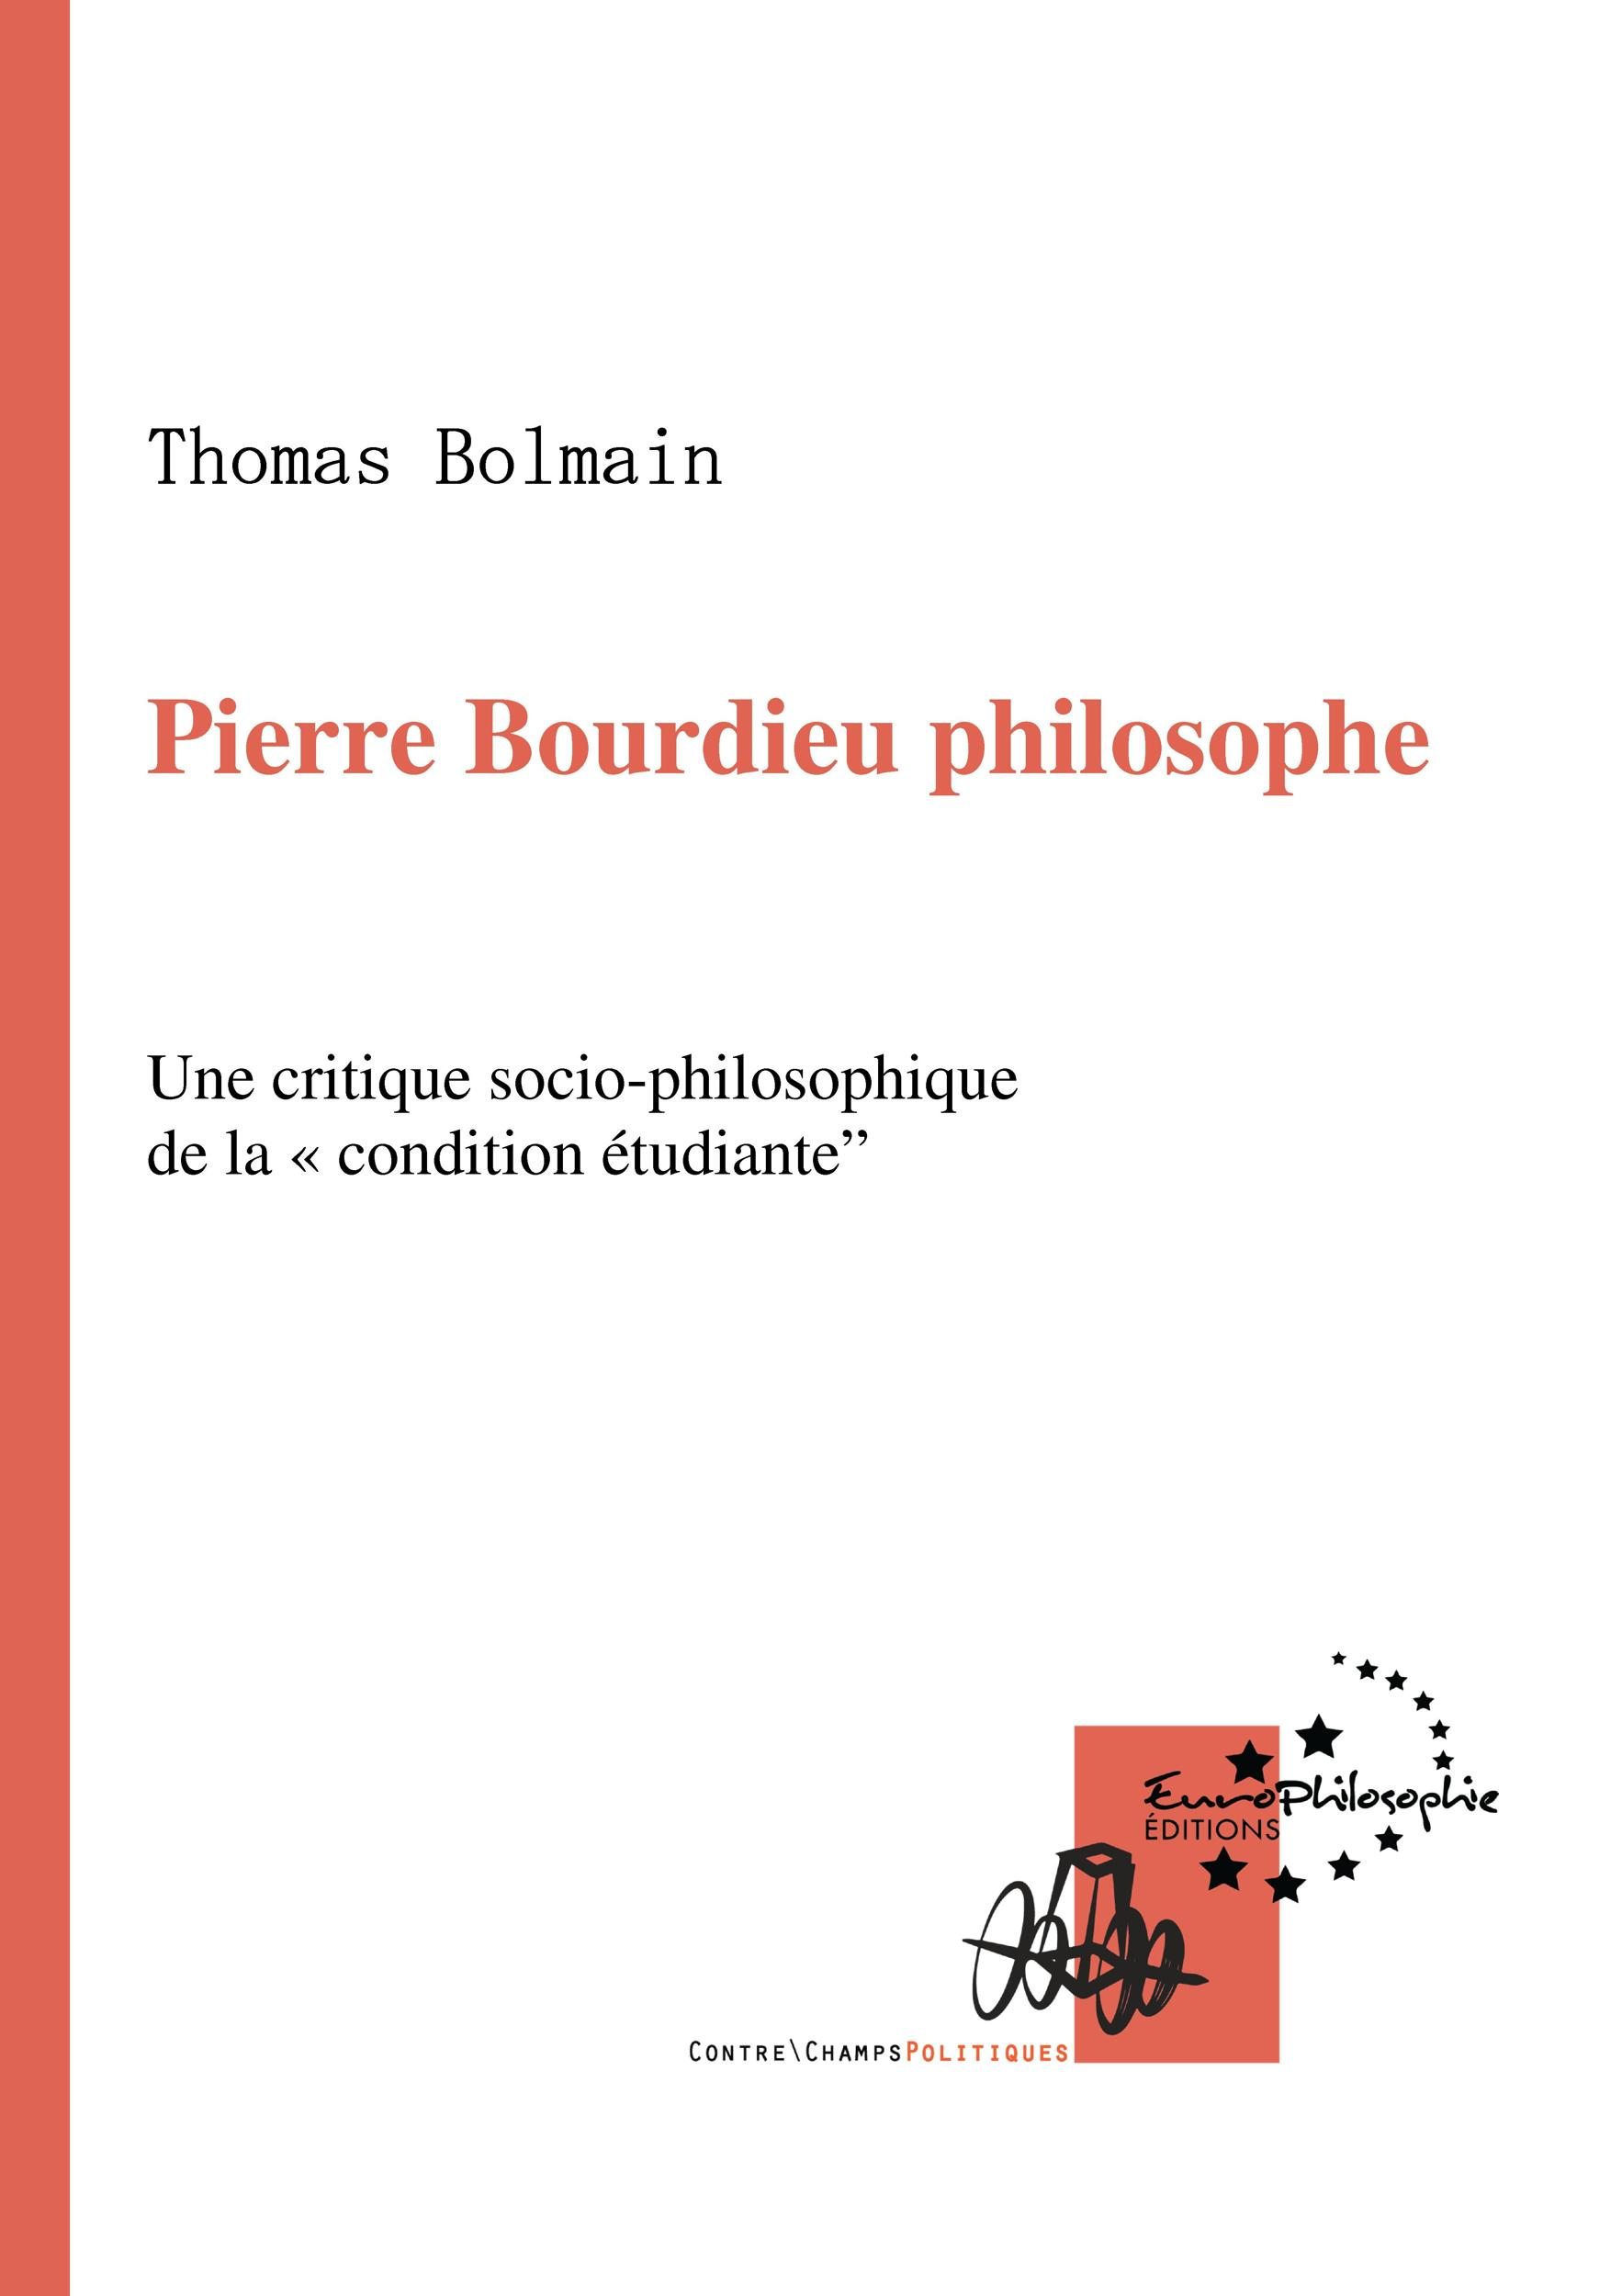 Pierre Bourdieu Philosophe, UNE CRITIQUE SOCIO-PHILOSOPHIQUE DE LA « CONDITION ÉTUDIANTE »